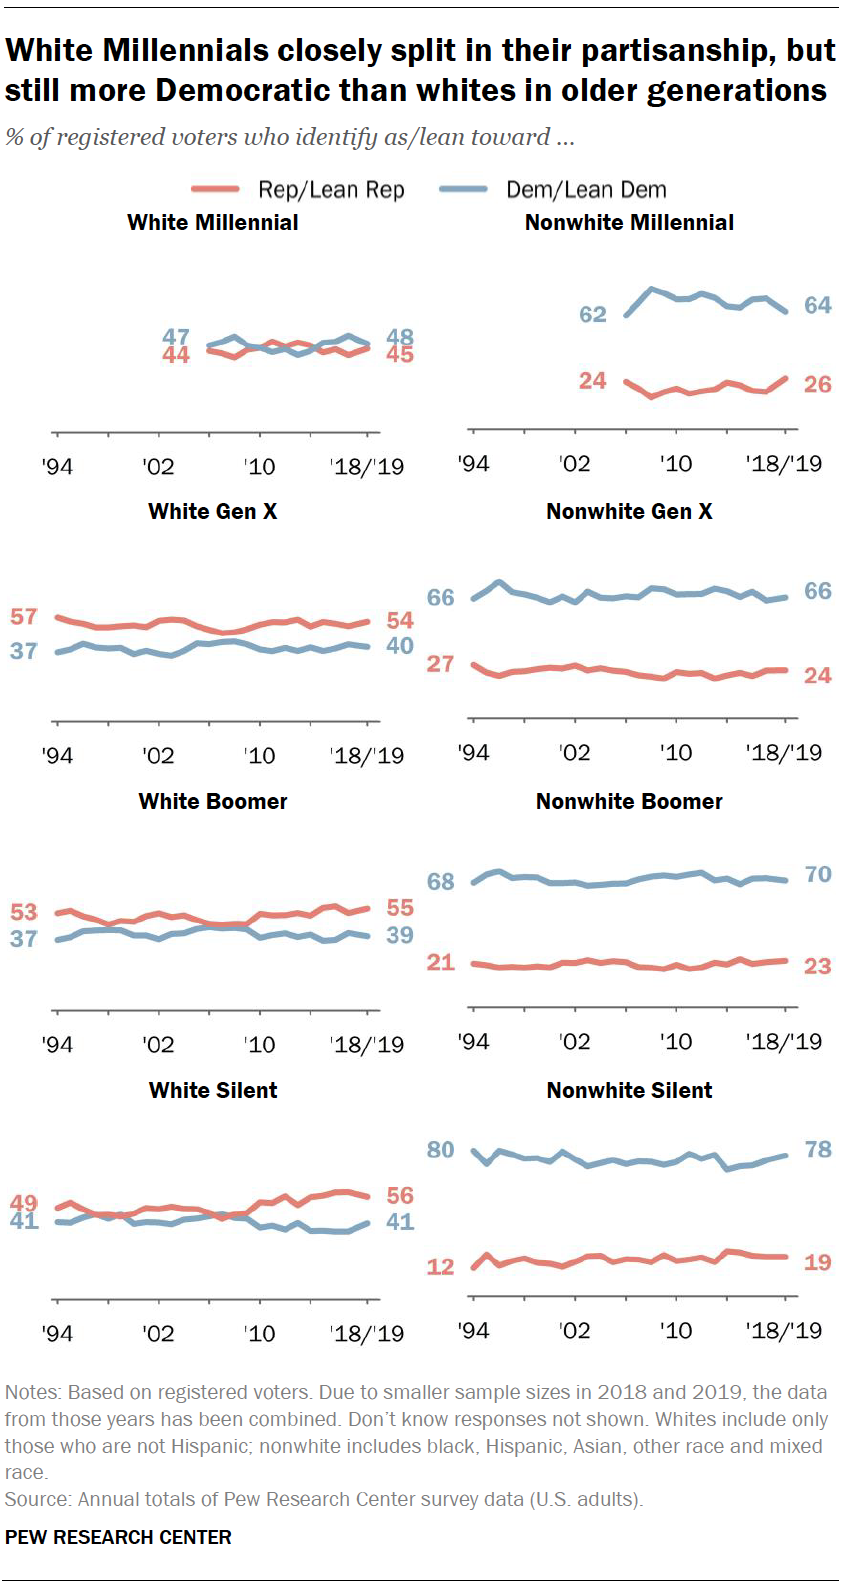 White Millennials closely split in their partisanship, but still more Democratic than whites in older generations